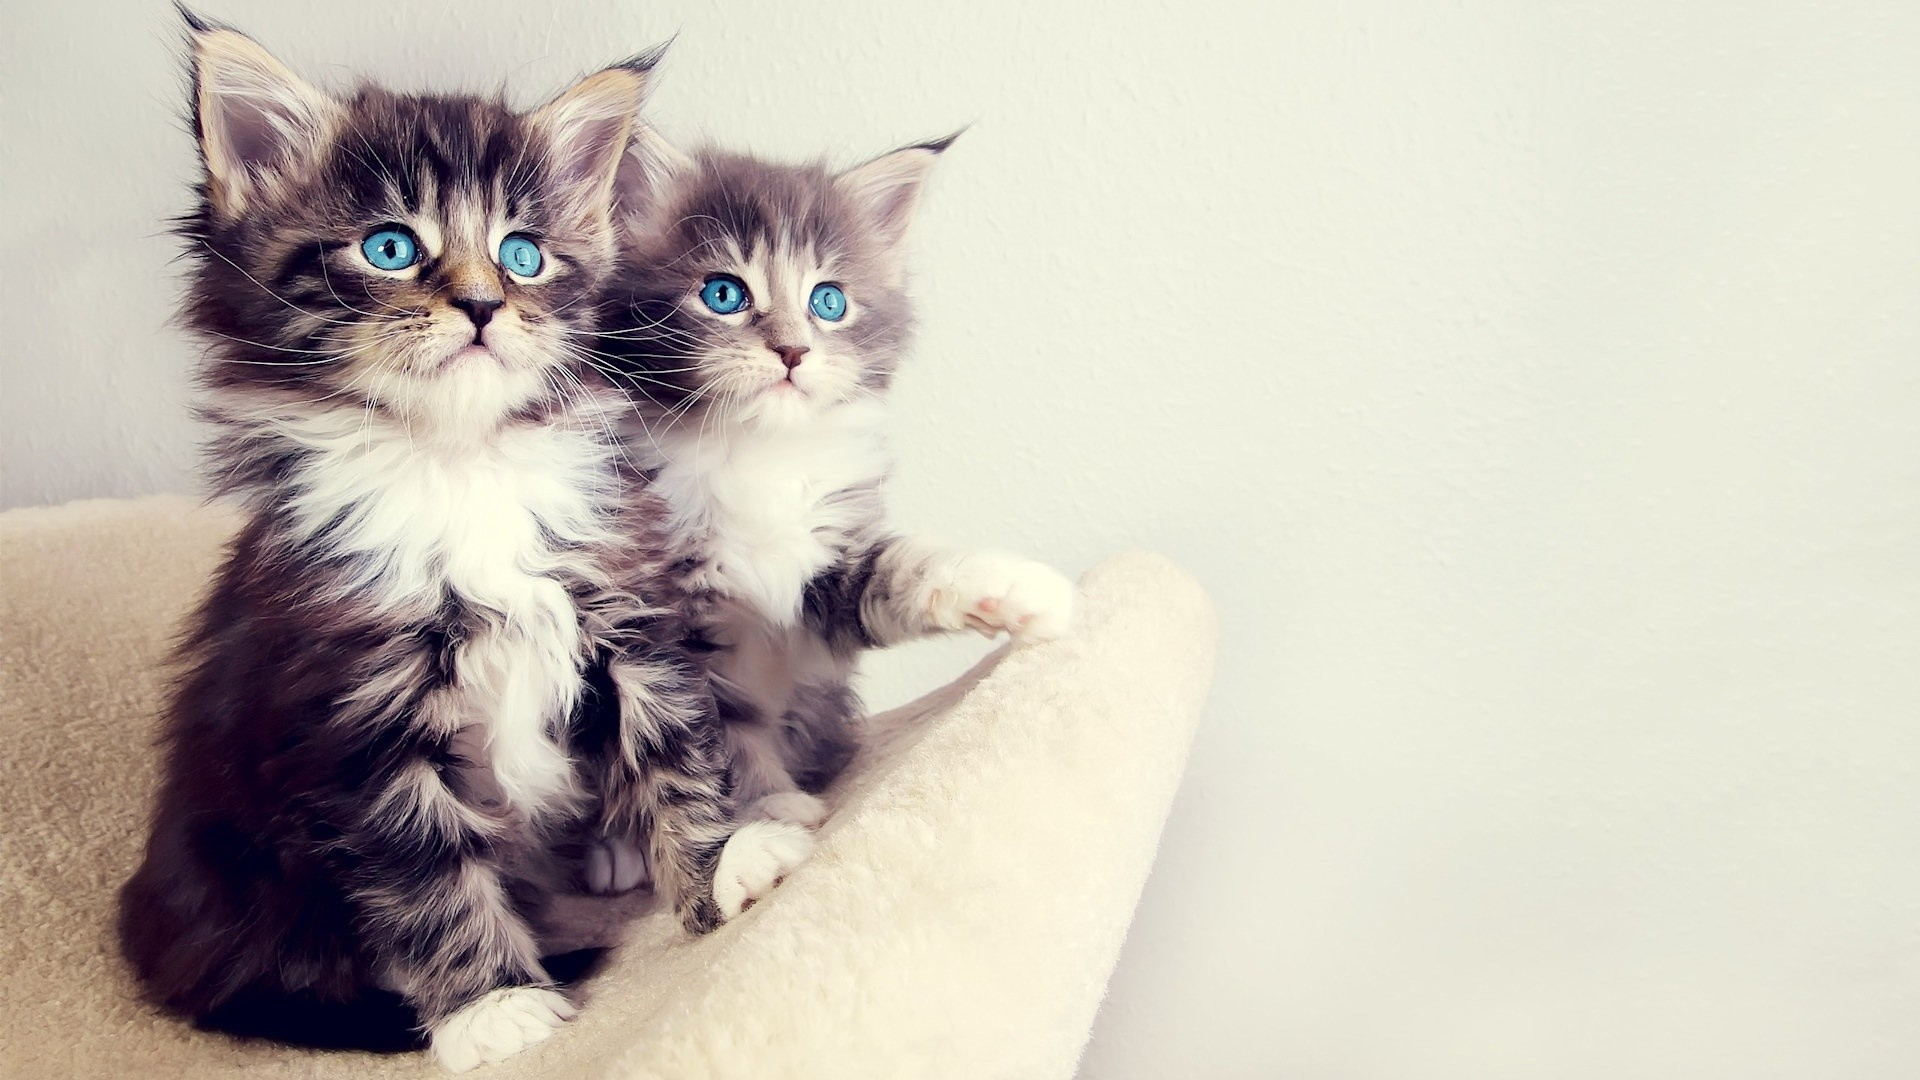 Cute kitten desktop wallpaper 60 images - Kitten wallpaper hd ...